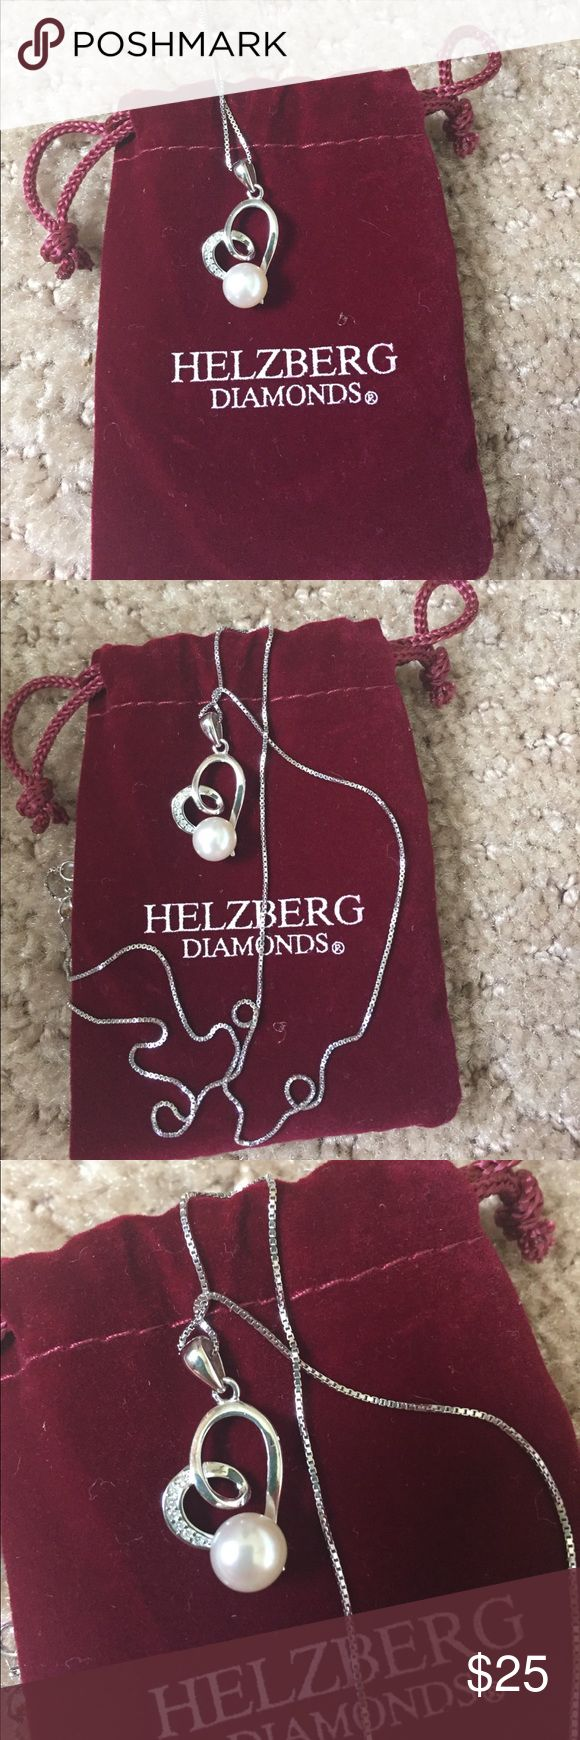 Helzberg diamonds pearl necklace. New in dust ruffle bag, Helzberg diamonds heart necklace with diamond accents and white June pearl birthstone. helzberg diamonds Jewelry Necklaces